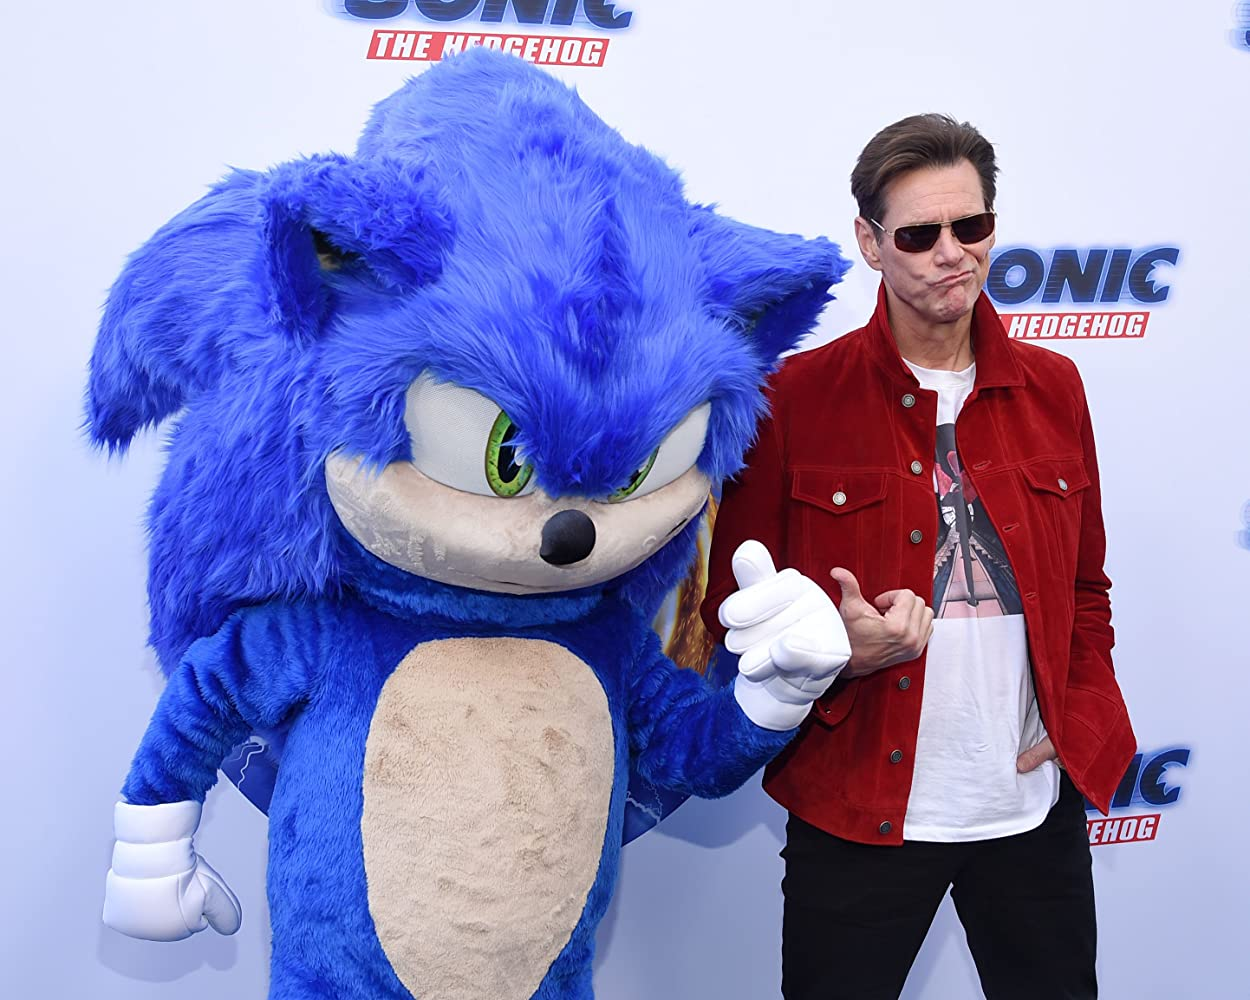 Jim Carrey at an event for Sonic the Hedgehog (2020)